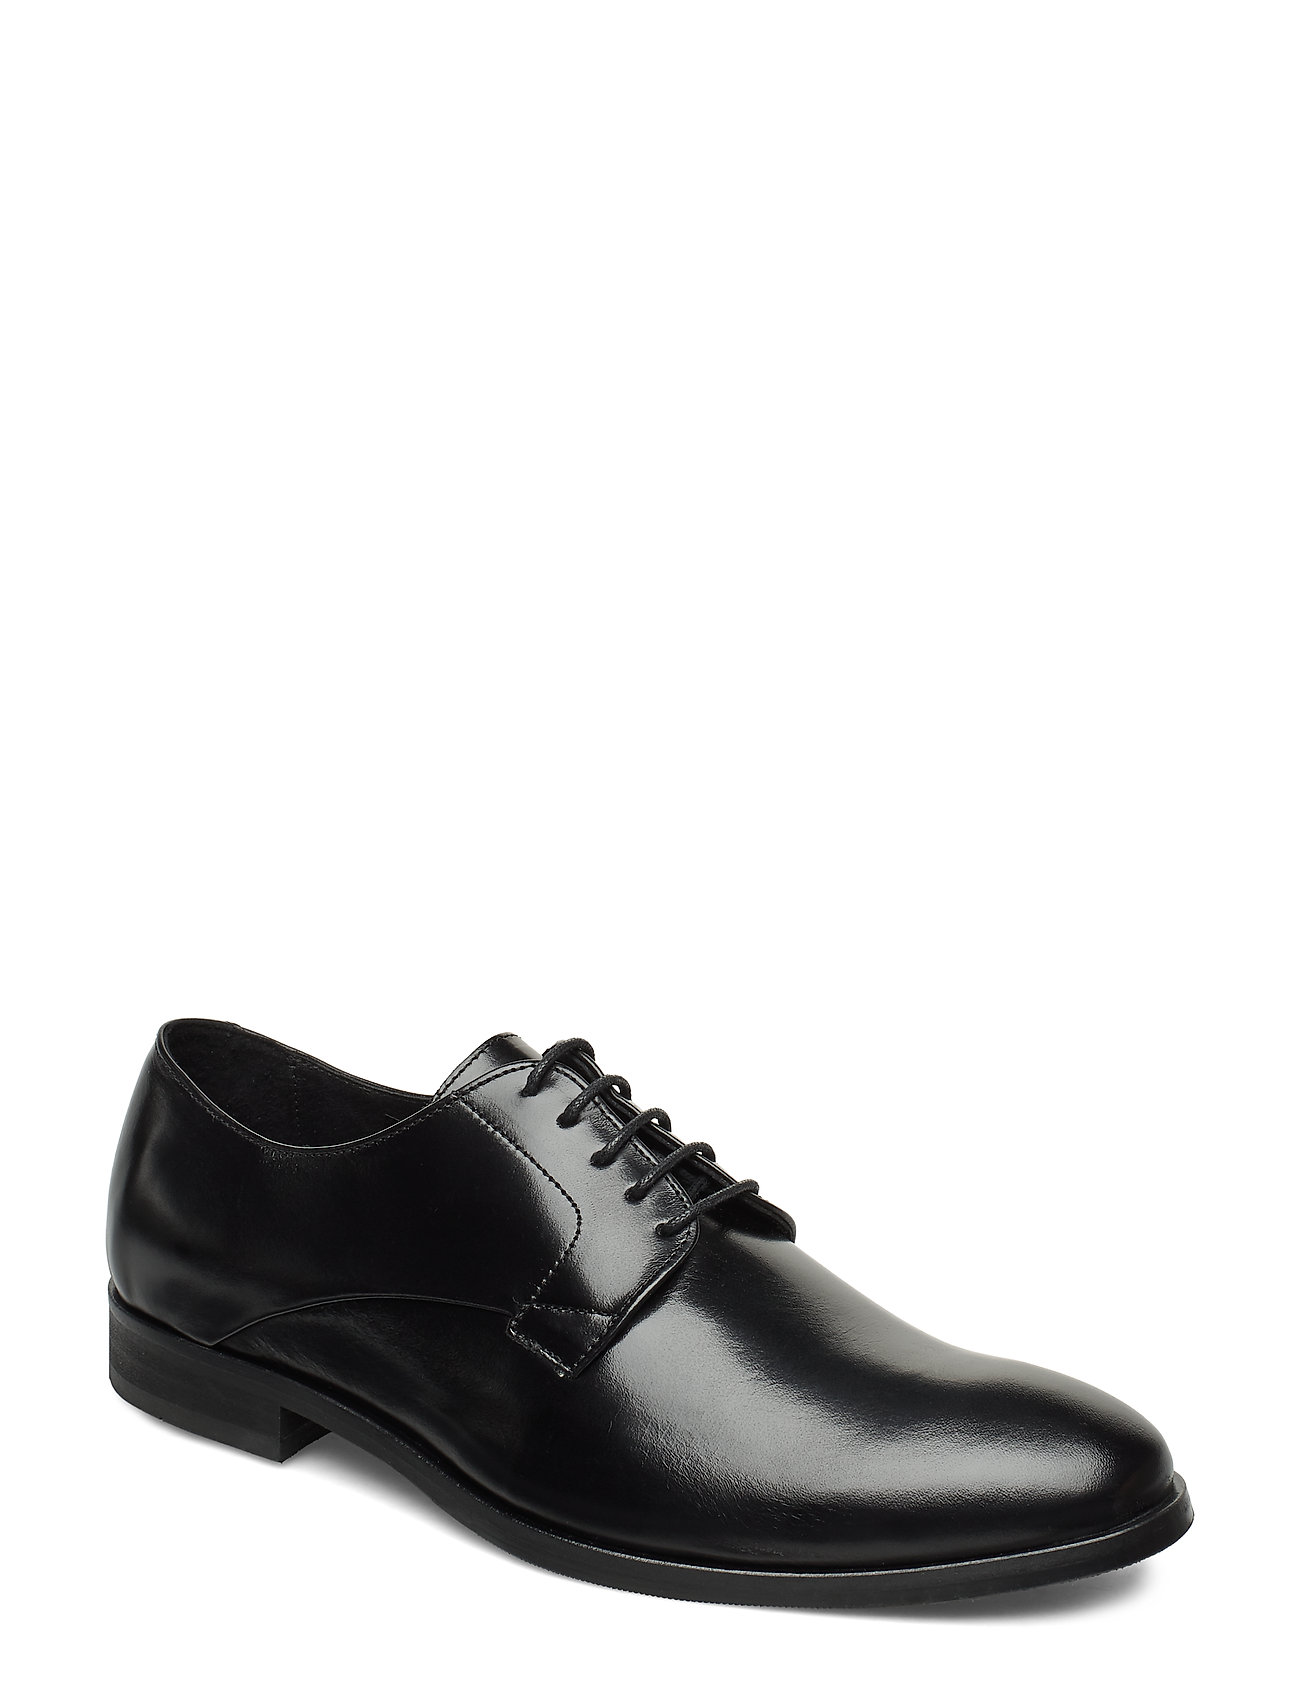 Image of Stb-Rampling L Shoes Business Laced Shoes Sort Shoe The Bear (3279932155)